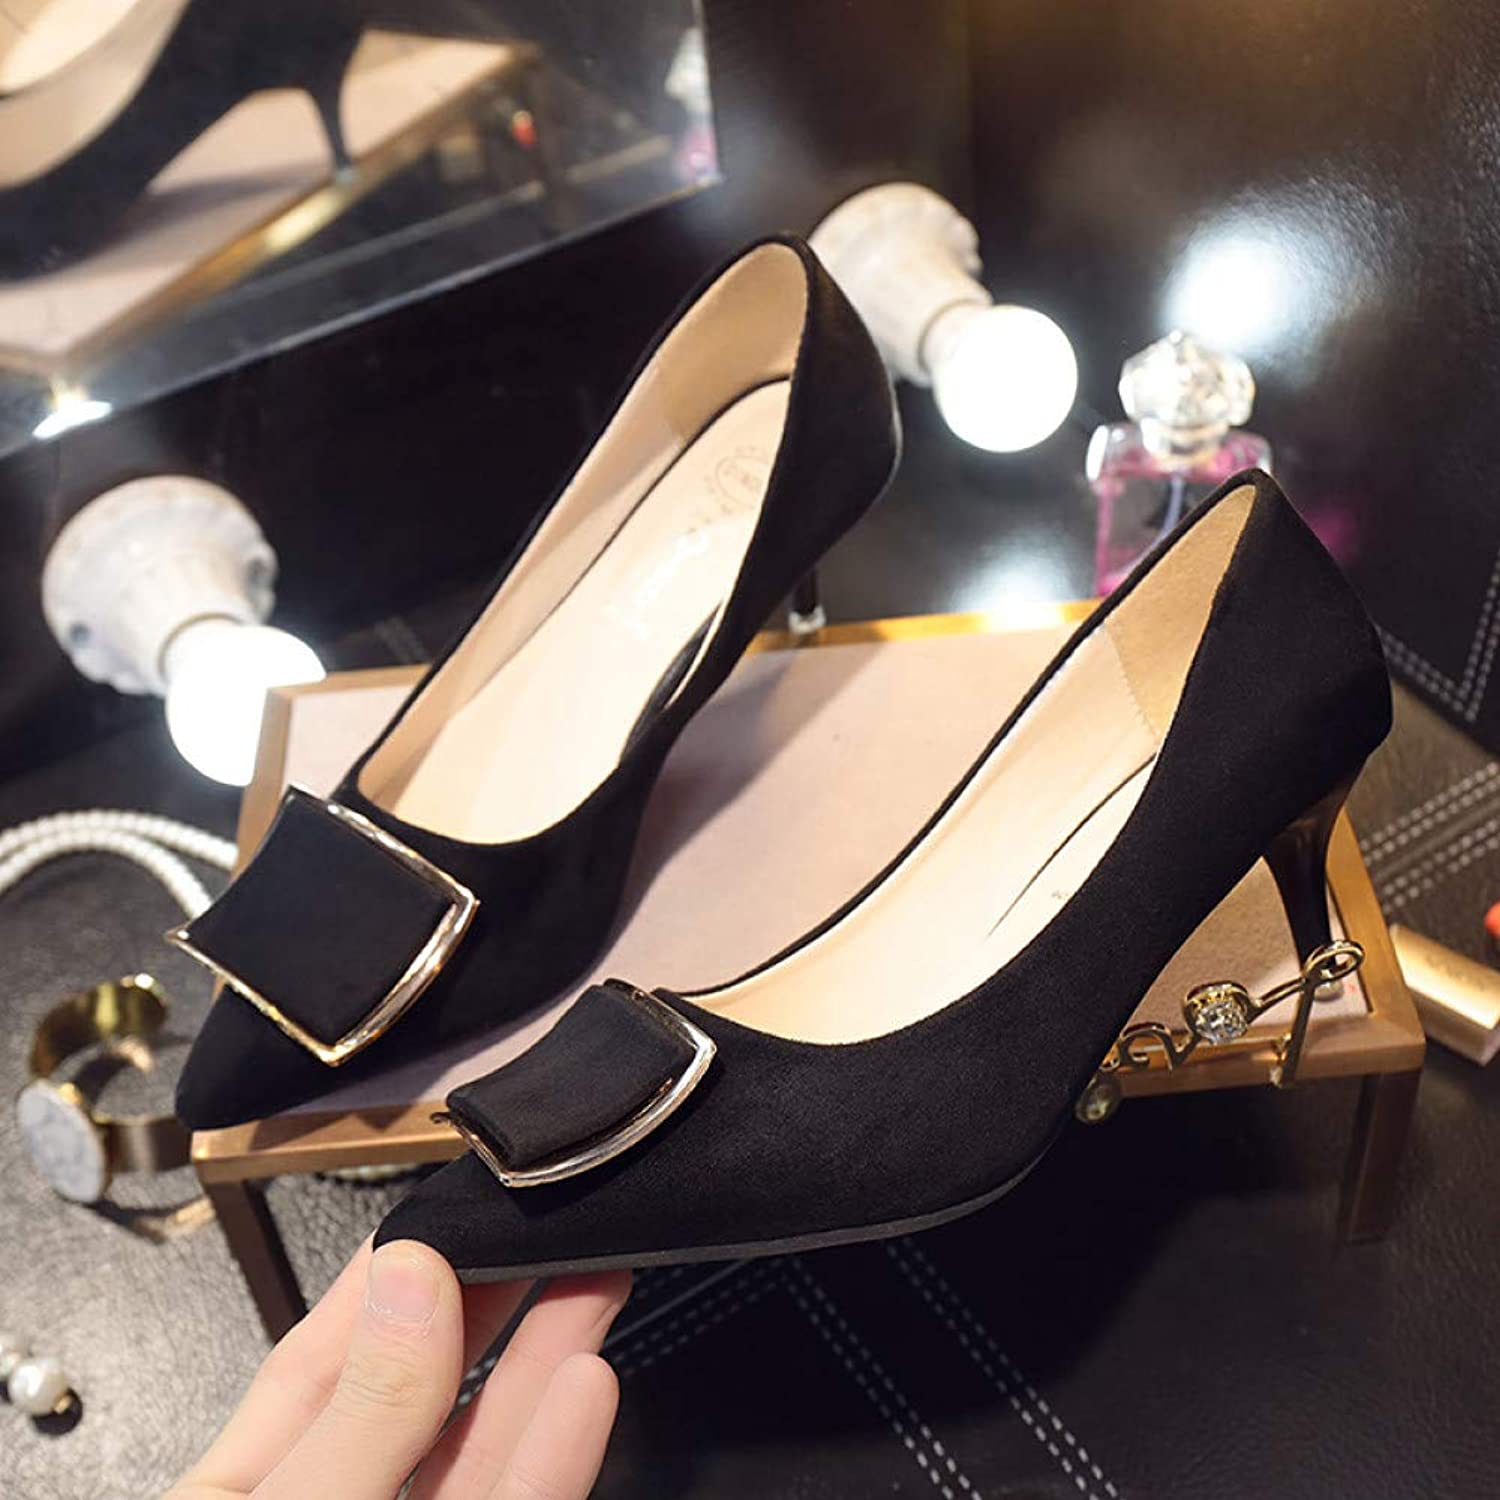 UKJSNHH igh Heels Office shoes Pointed Toe Slip on shoes Woman Pumps Nuback Leather Women Dress shoes Ladies Boat shoes